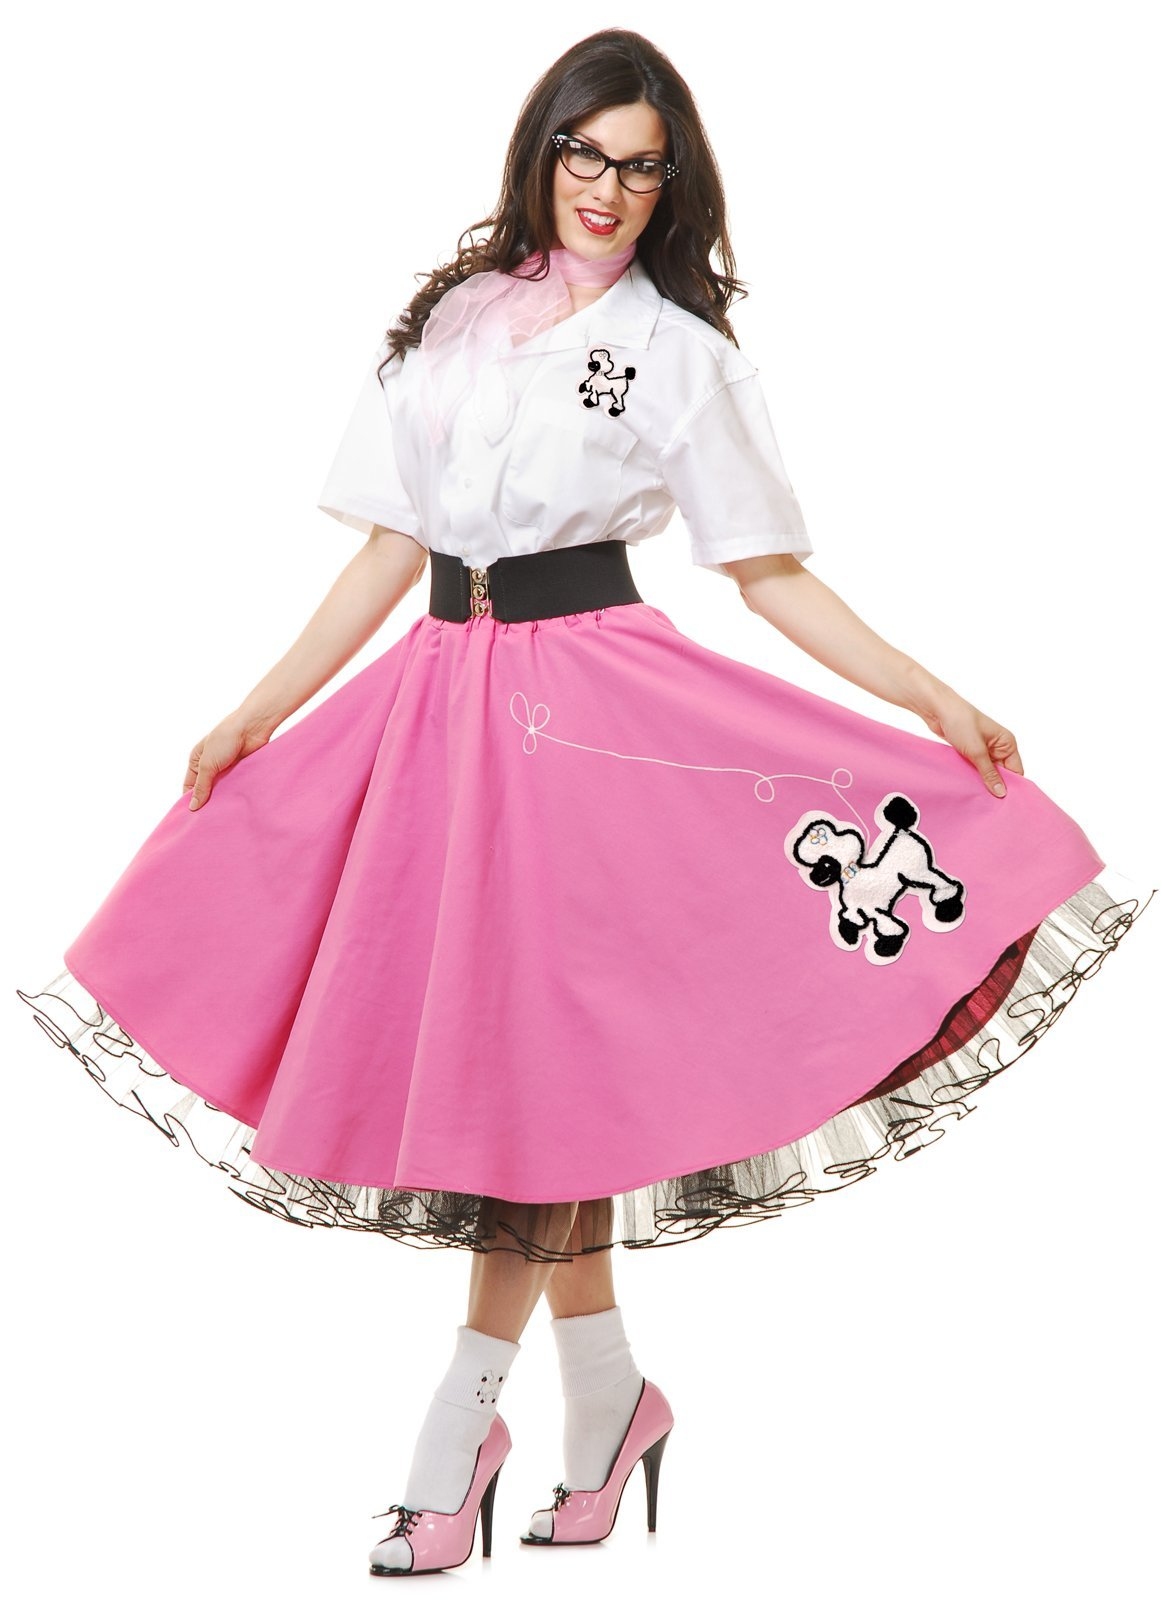 Complete 50's Poodle Outfit Adult Costume Pink - Small by Charades